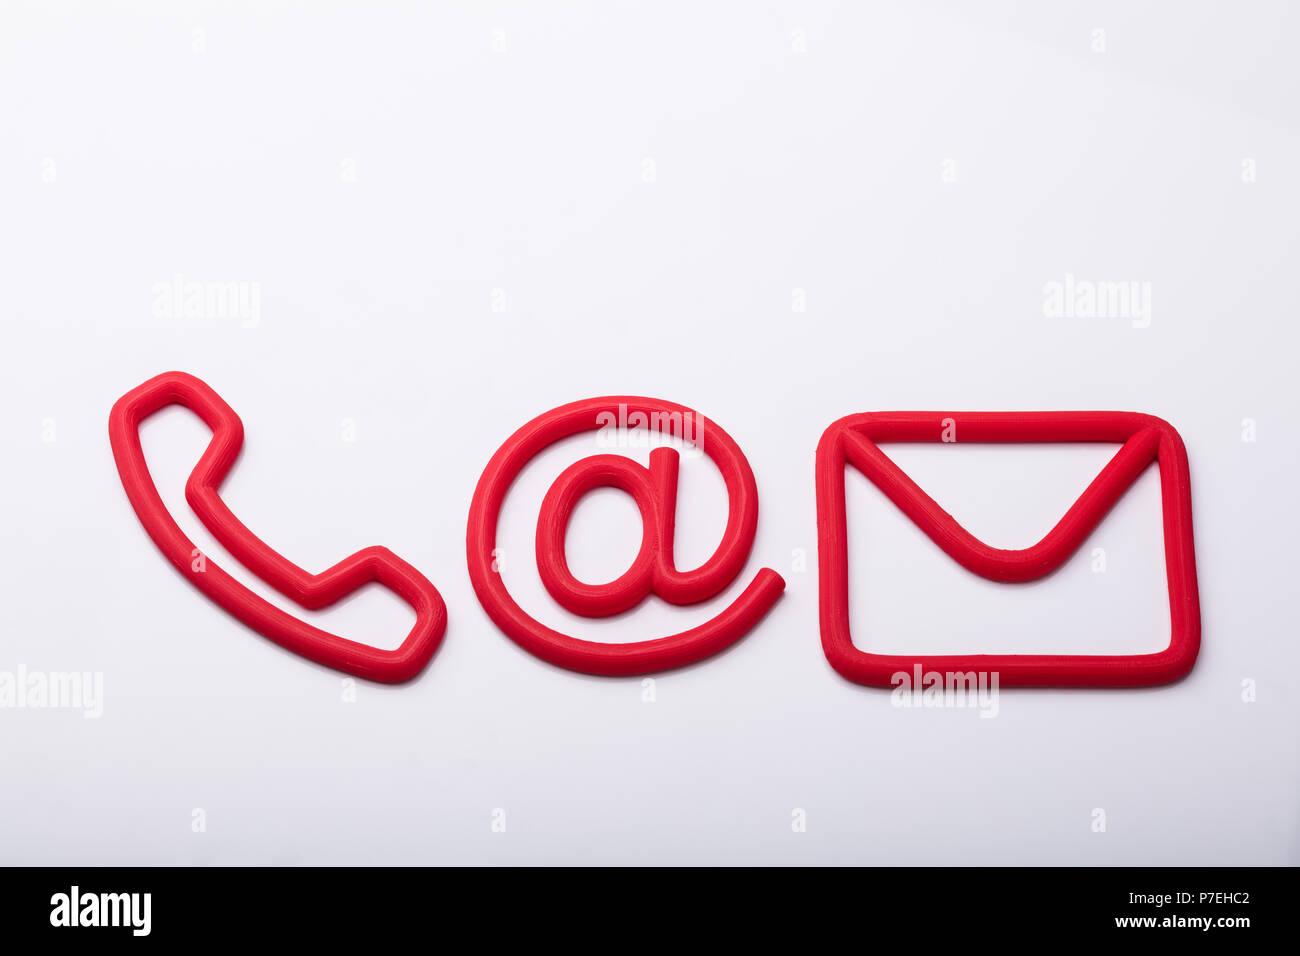 Contact Us Icons Showing Various Communication Options Stock Photo